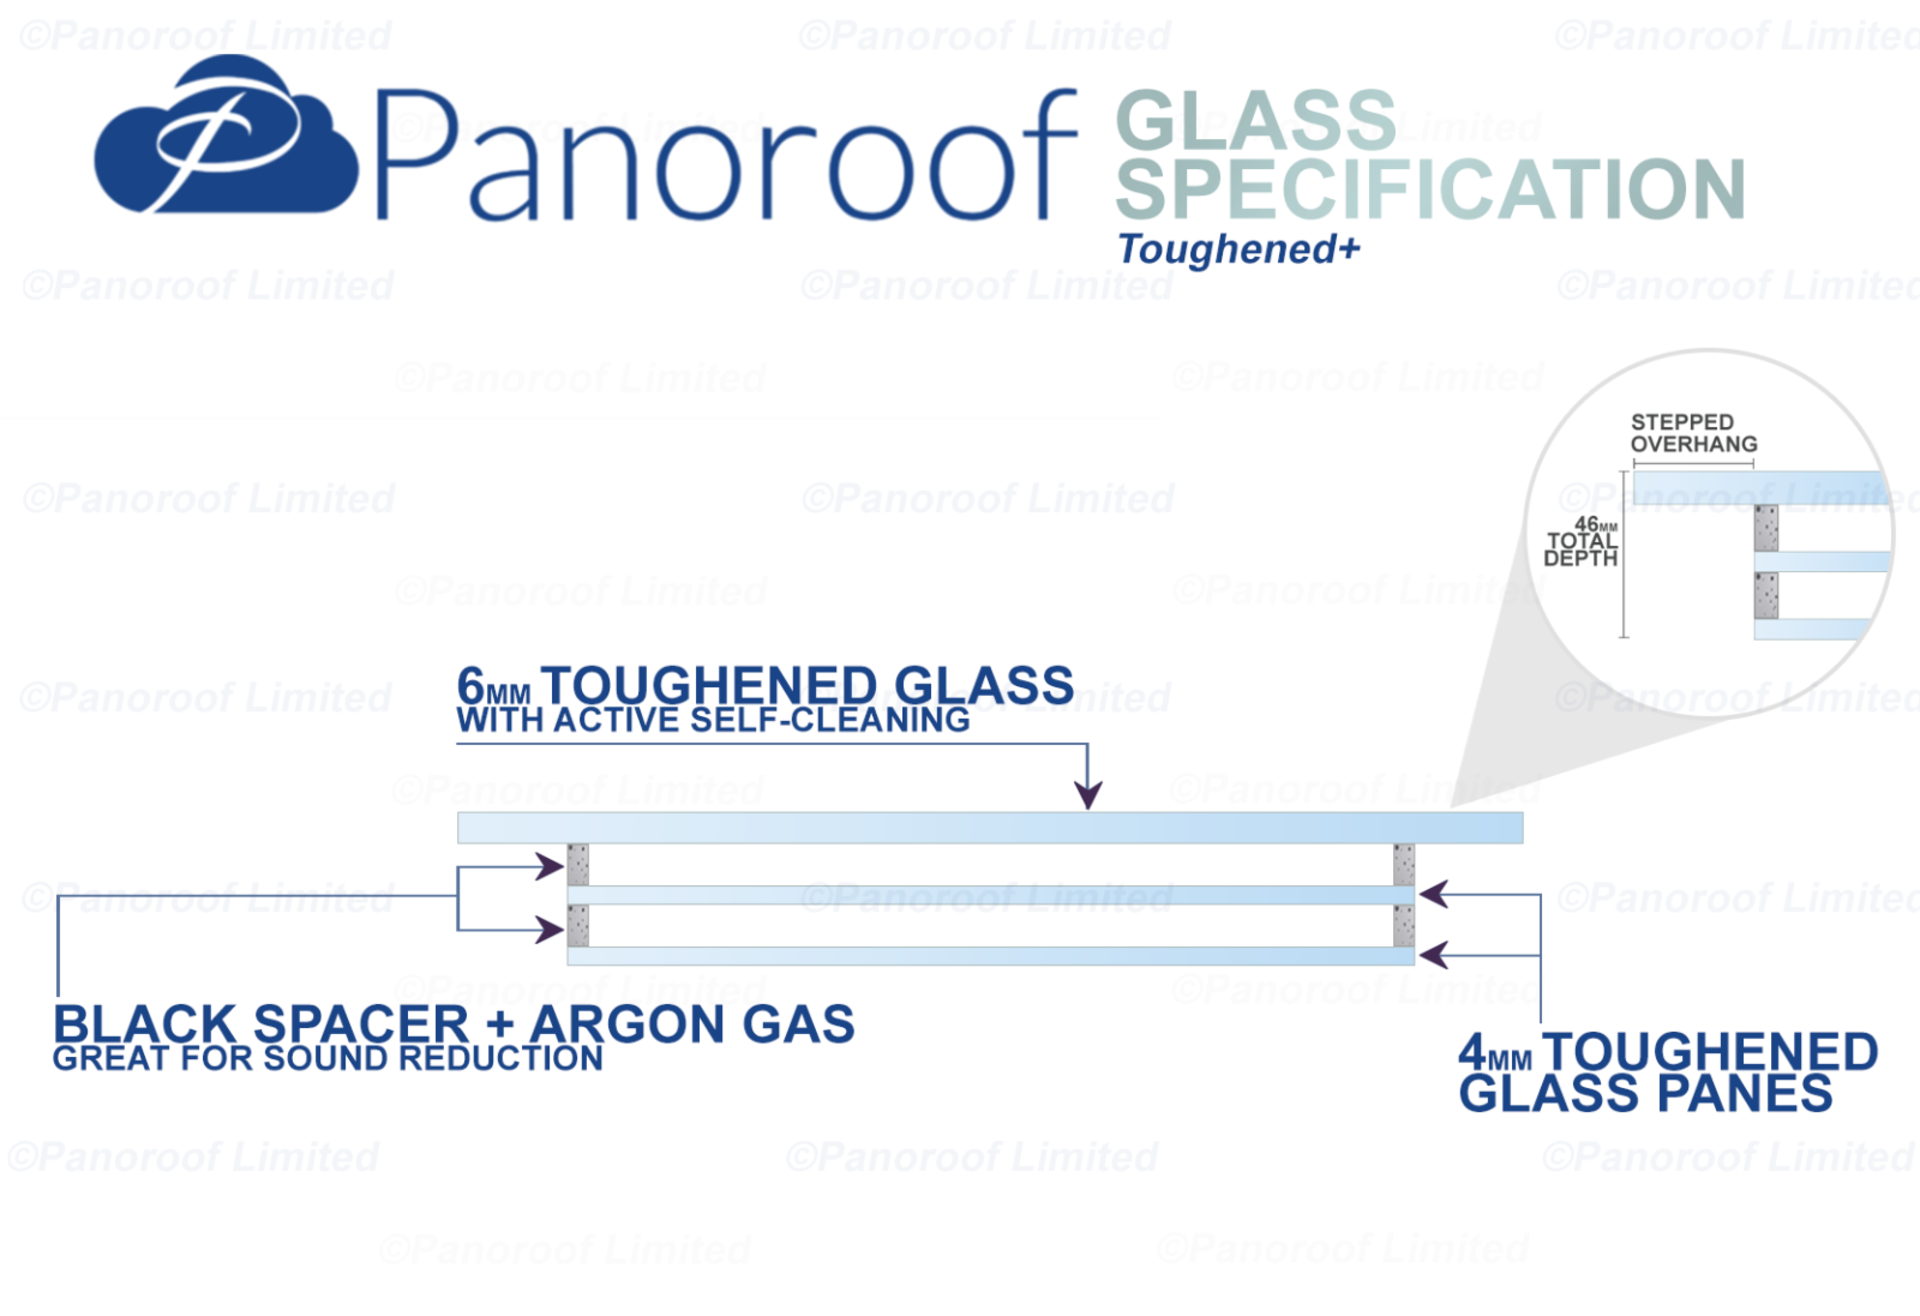 """""""""""""""Panoroof Triple Glazed Self Cleaning 600x900mm (inside Size Visable glass area) Seamless Glass - Image 5 of 6"""